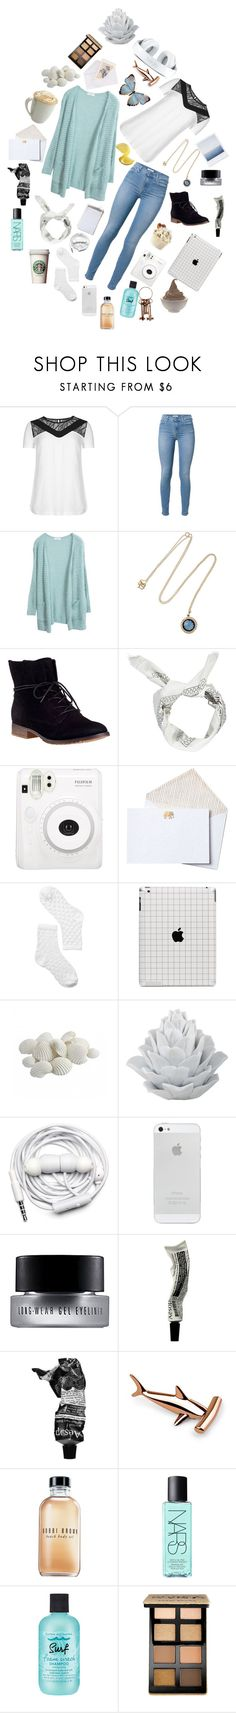 """Sometimes home isn't four walls, it's just two eyes and heartbeat"" by jenna323-m ❤ liked on Polyvore featuring M&S, 7 For All Mankind, Ippolita, Steve Madden, Boohoo, Fuji, Dulce, John Robshaw, Monki and Urbanears"